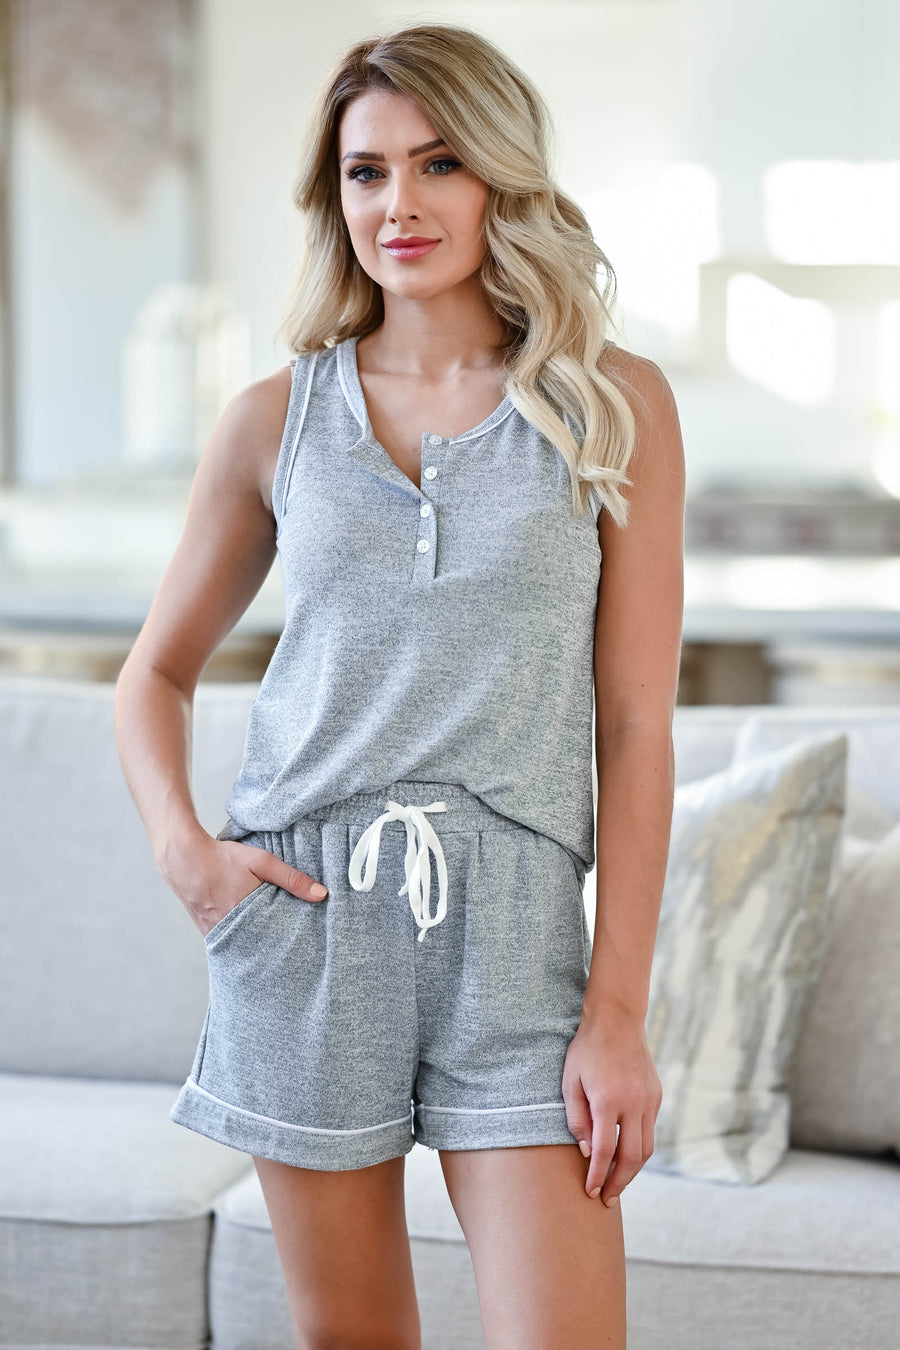 CBRAND Sweet Slumber Pajama Set - Heather Grey womens cozy sleeveless, round neckline featuring four buttons matching shorts with elastic waistband closet candy sitting